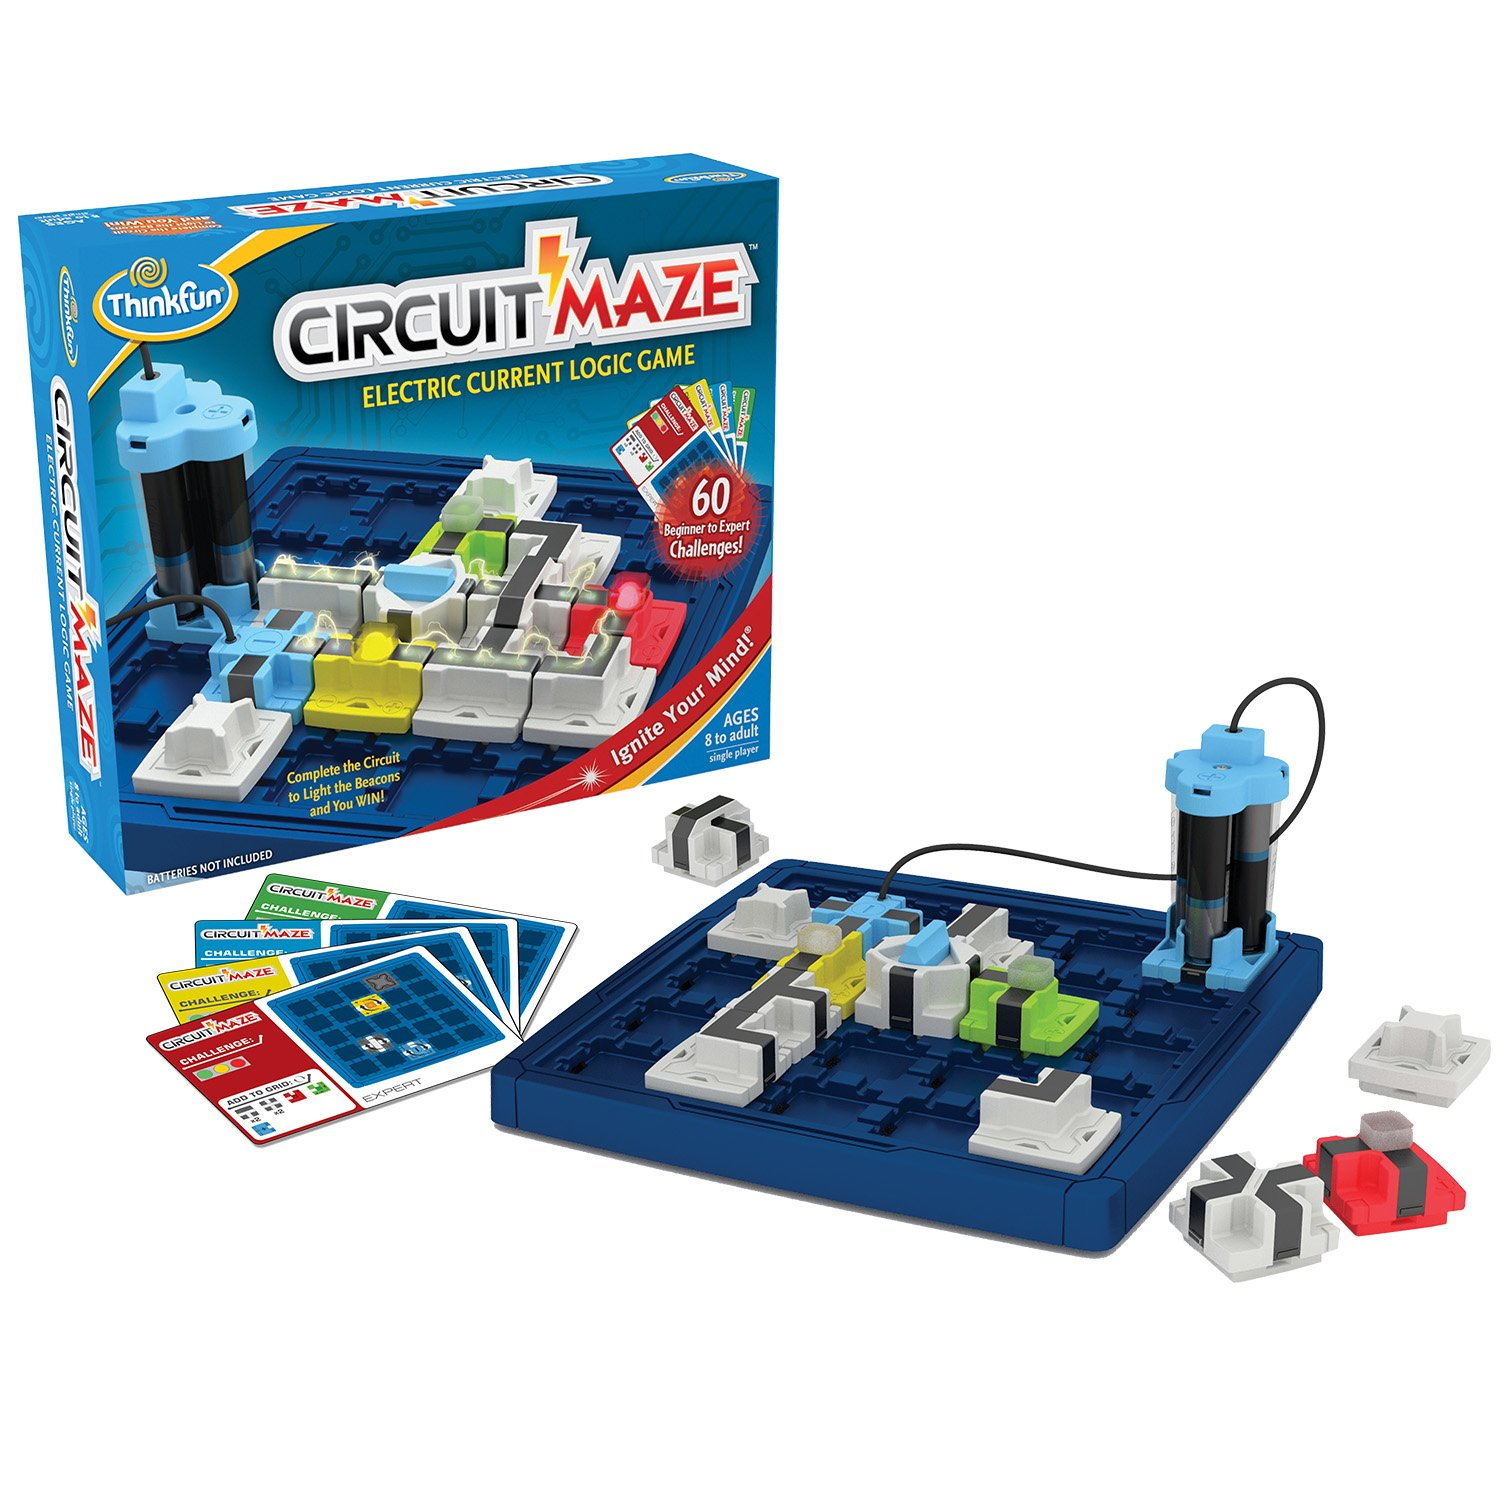 ThinkFun Circuit Maze Electric Current Logic Game and STEM Toy for Boys and Girls Age 8 and Up - Toy of the Year Finalist, Teaches Players about Circuitry through Fun Gameplay by Think Fun